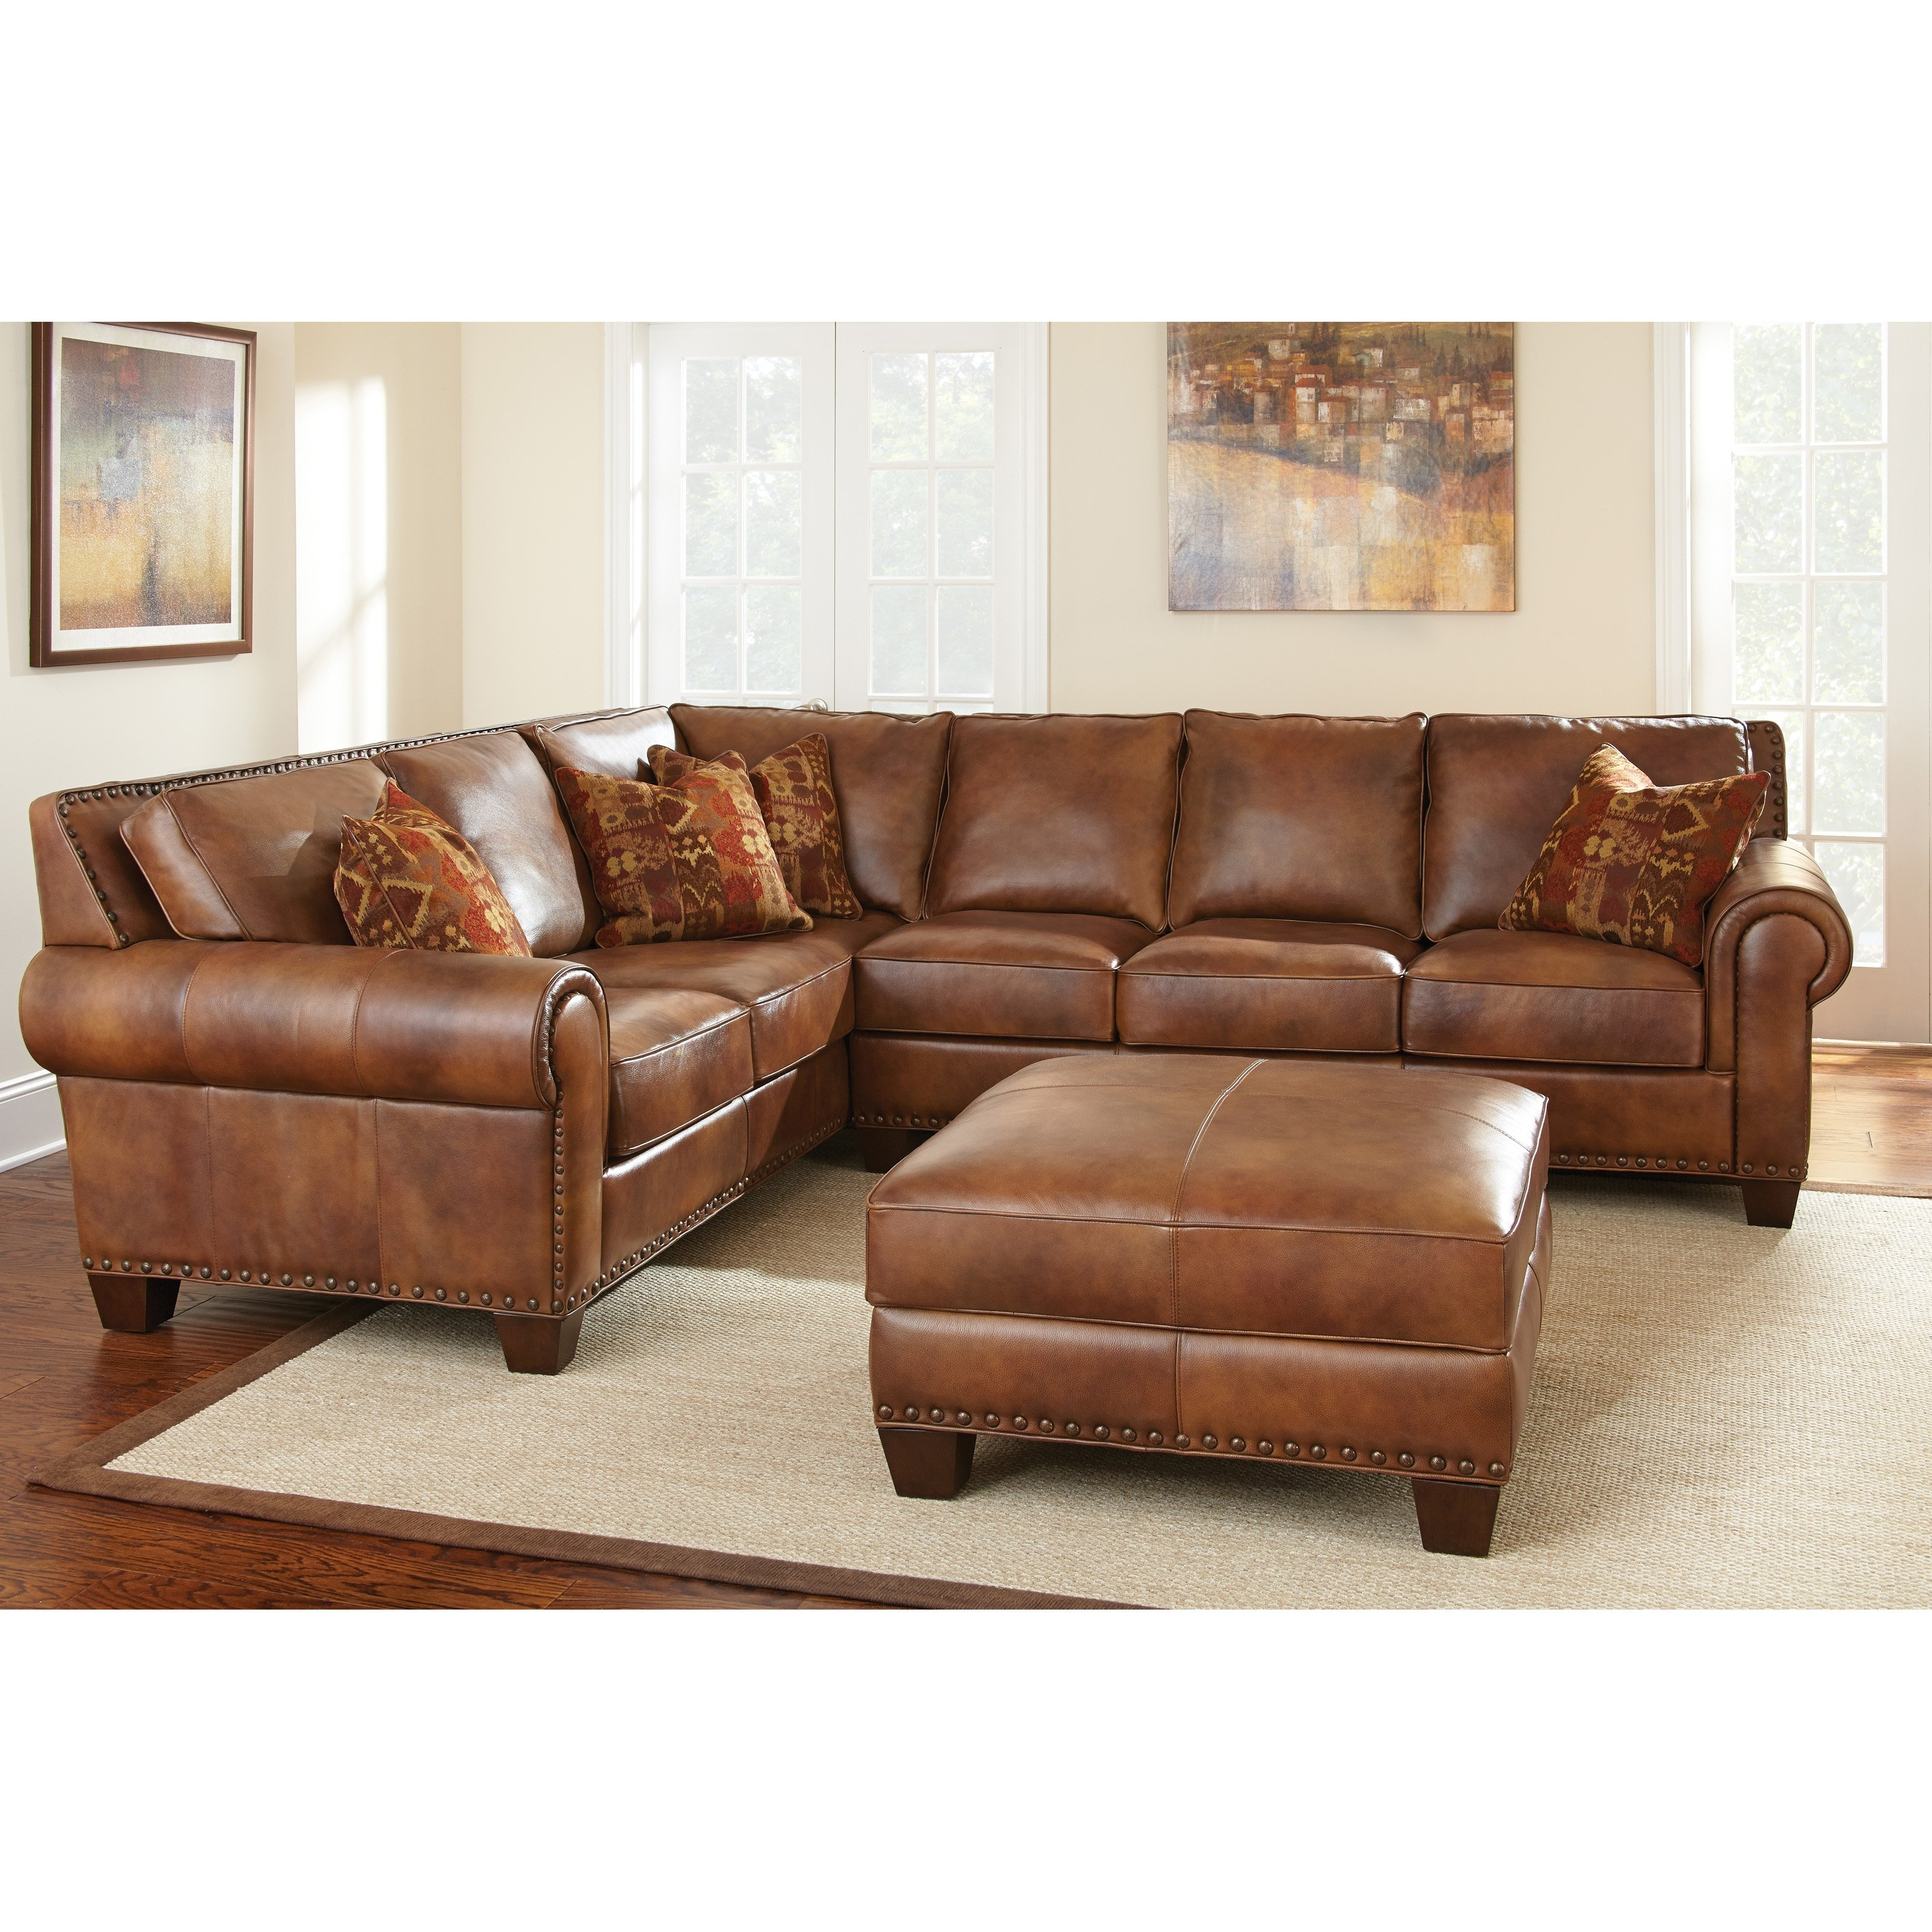 Ivan Smith Sectional Sofas With Well Known Have To Have It (View 11 of 20)